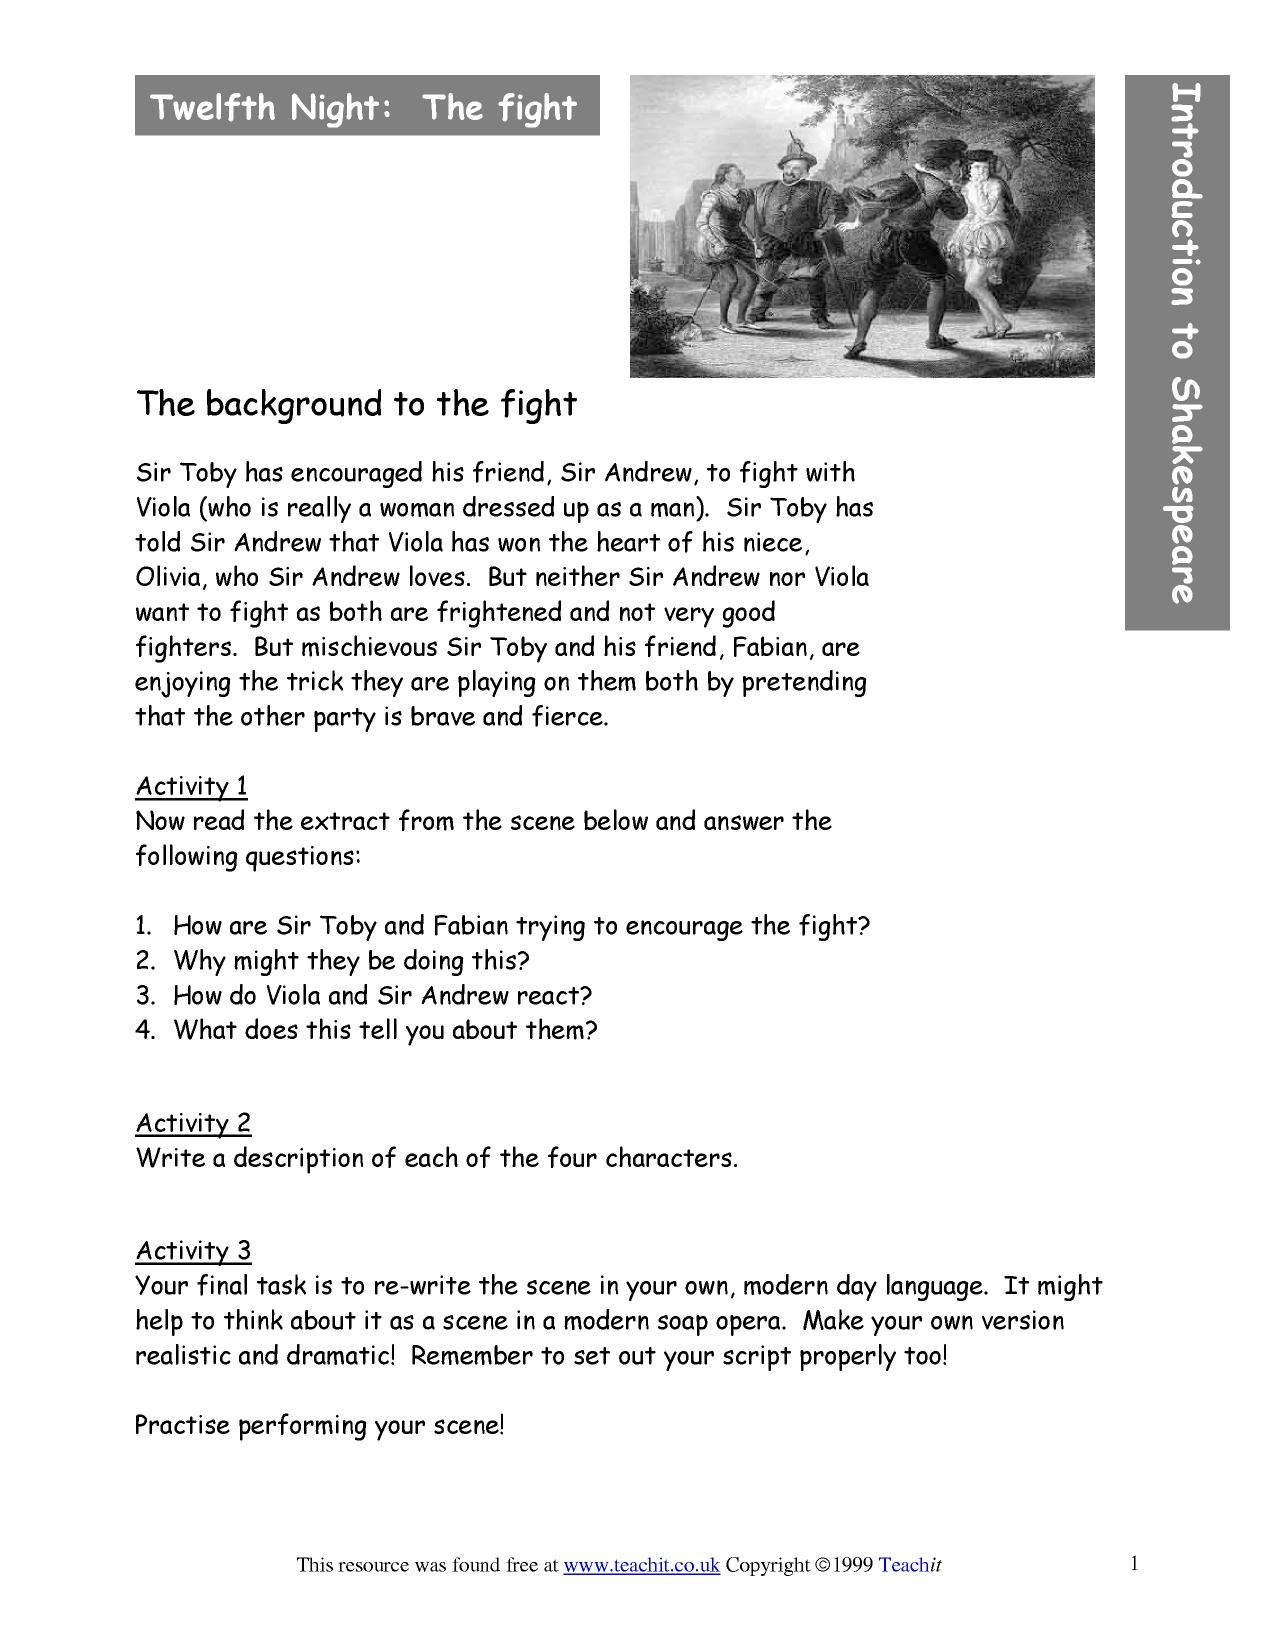 deception in william shakespeares twelfth night essay Plot & action deception and self-deception sample the use of deception in twelfth night by william shakespeare essay topic.